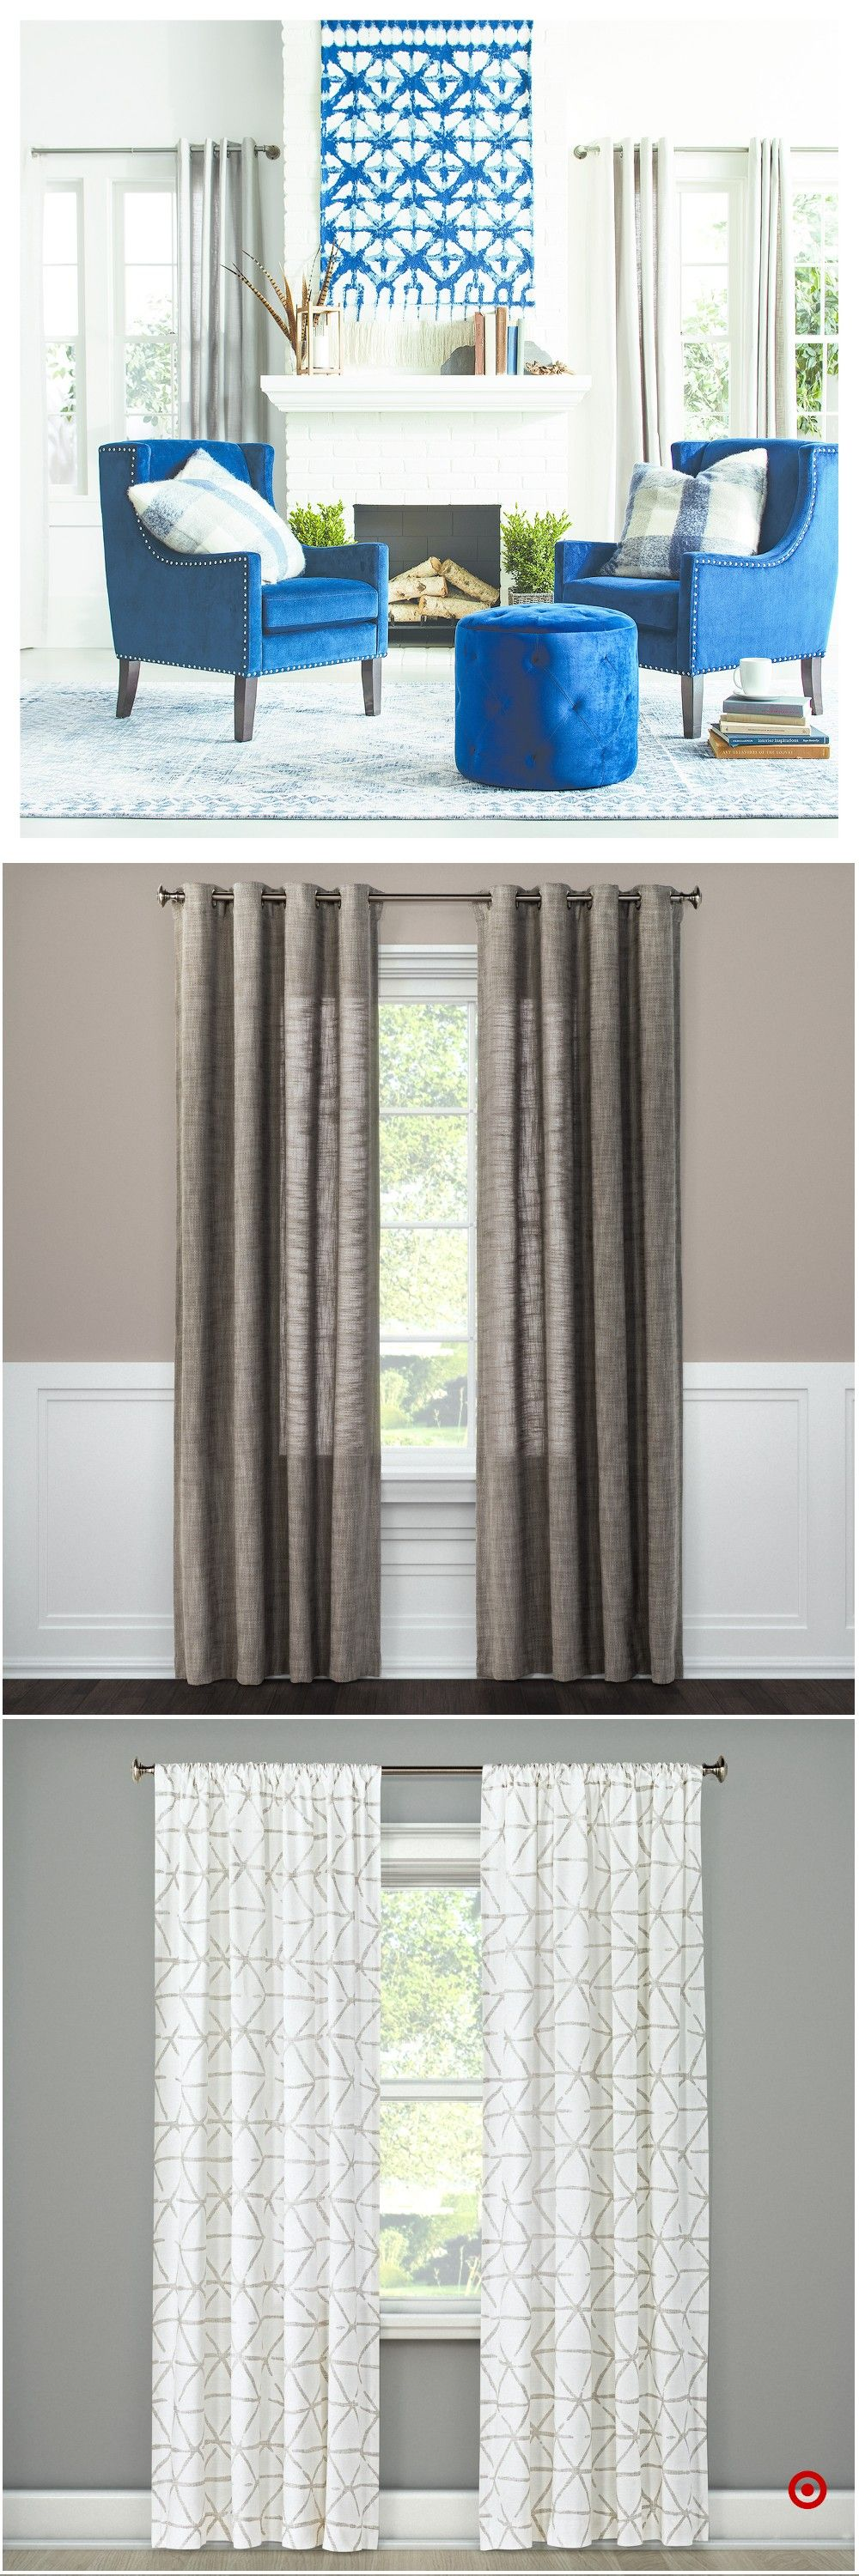 Window cover up ideas  shop target for curtain panels you will love at great low prices